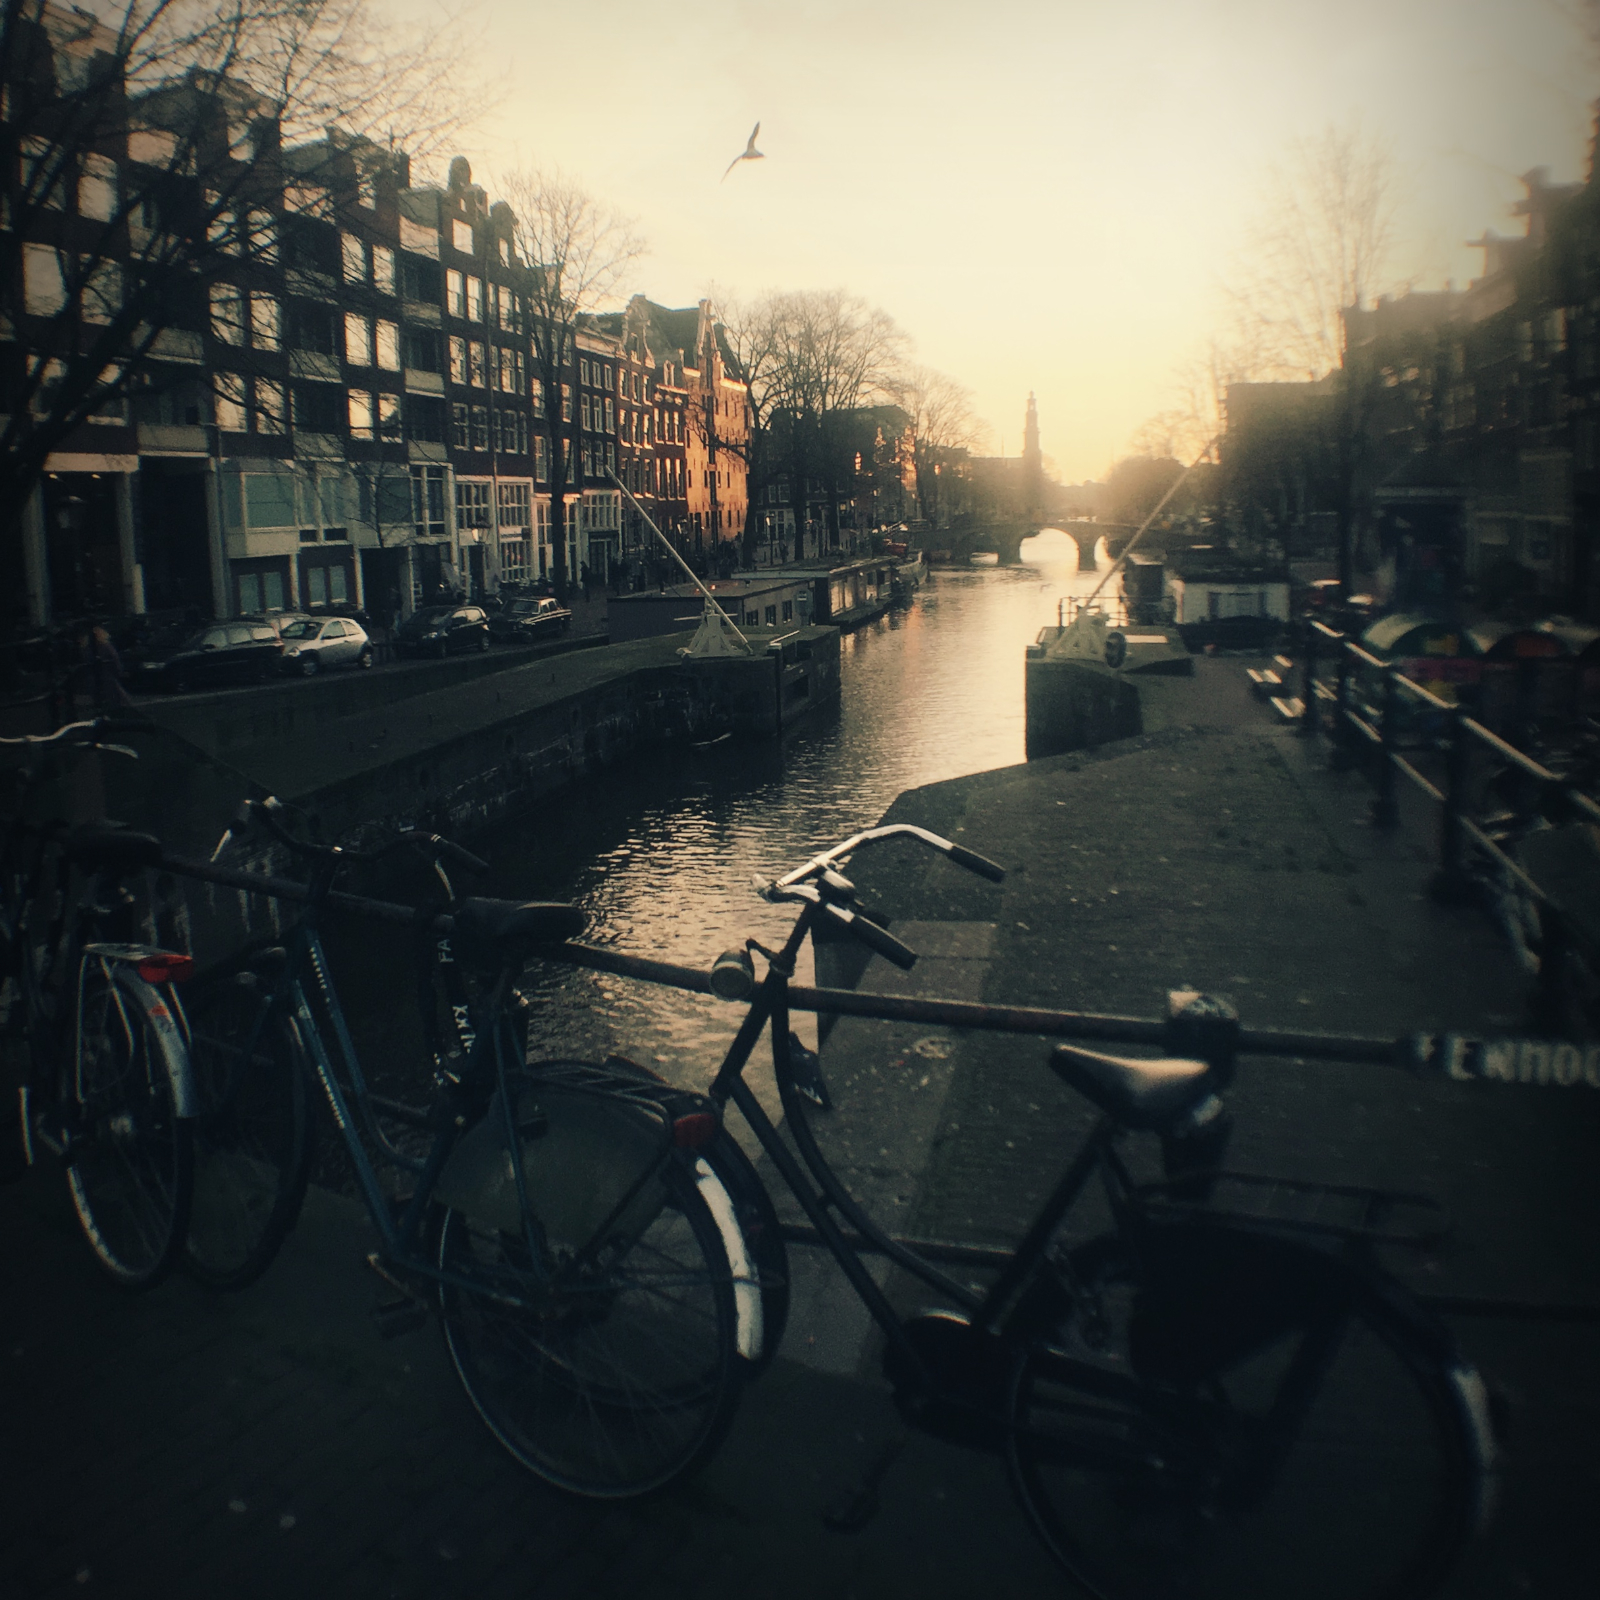 Evening on Prinsengracht canal.